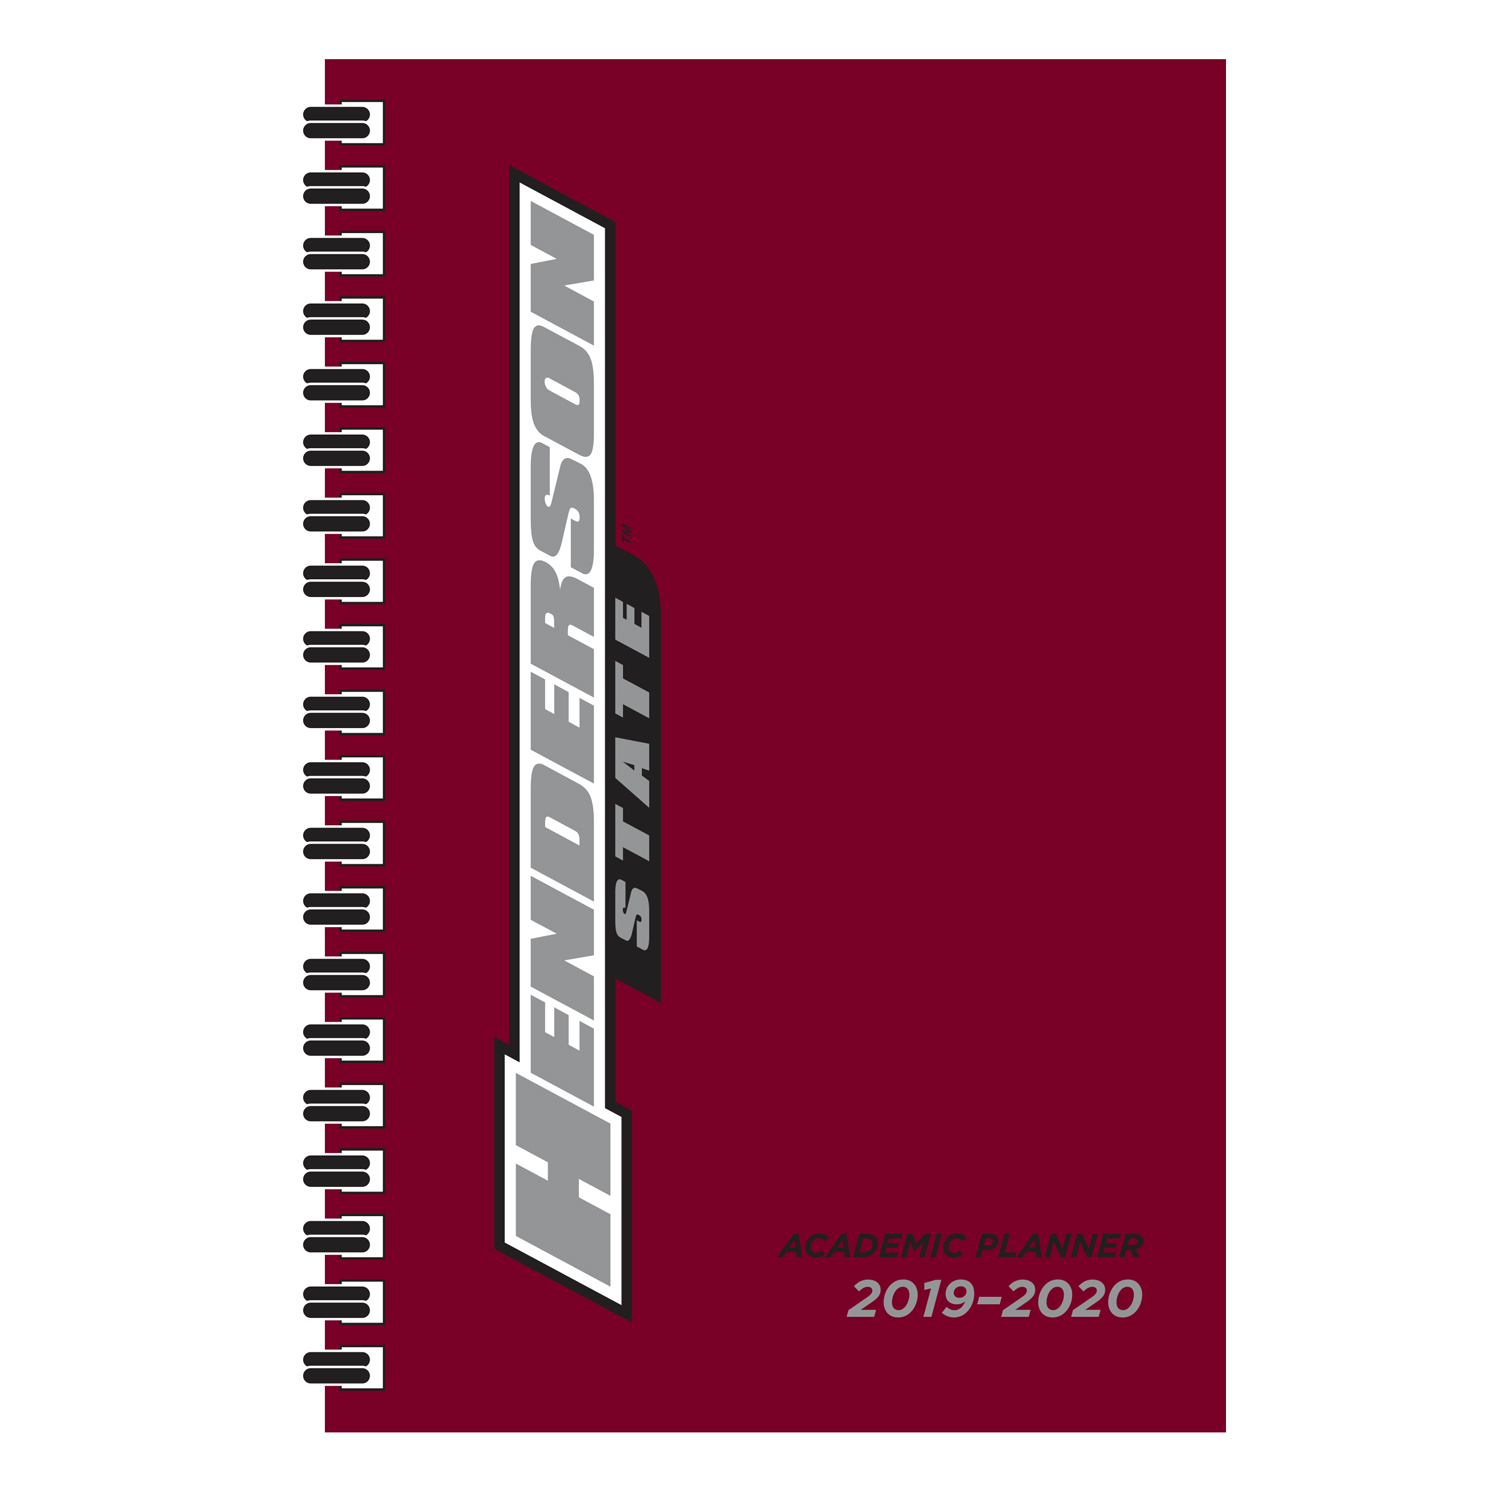 2019-2020 HENDERSON STATE ACADEMIC PLANNER